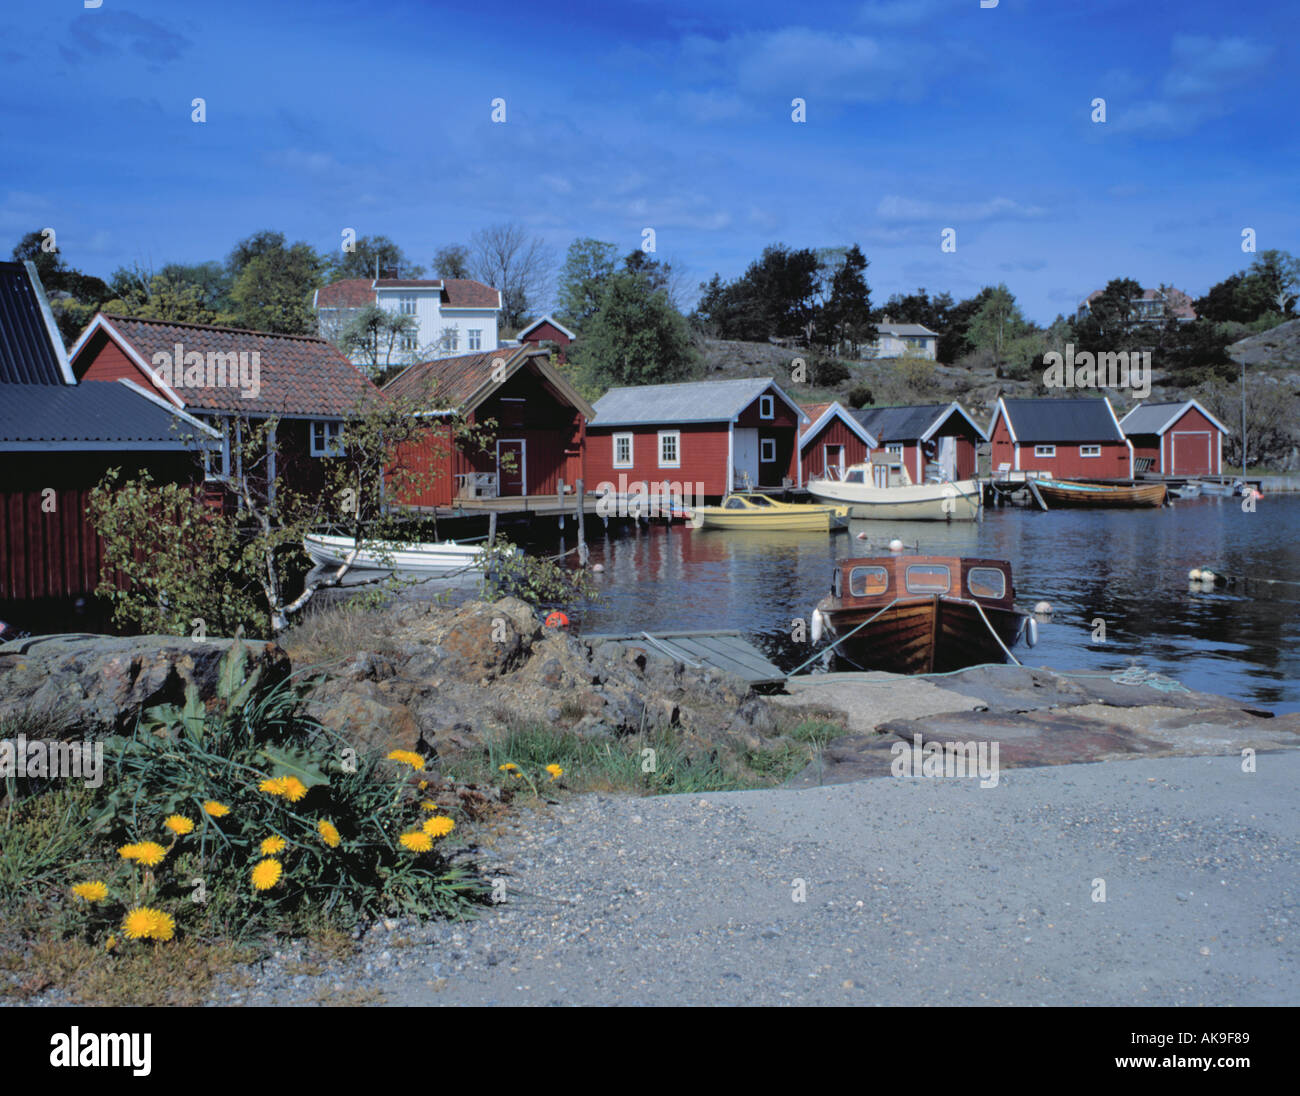 View over harbour to pretty waterside wooden huts, Homborsund, Aust-Agder, Norway. - Stock Image